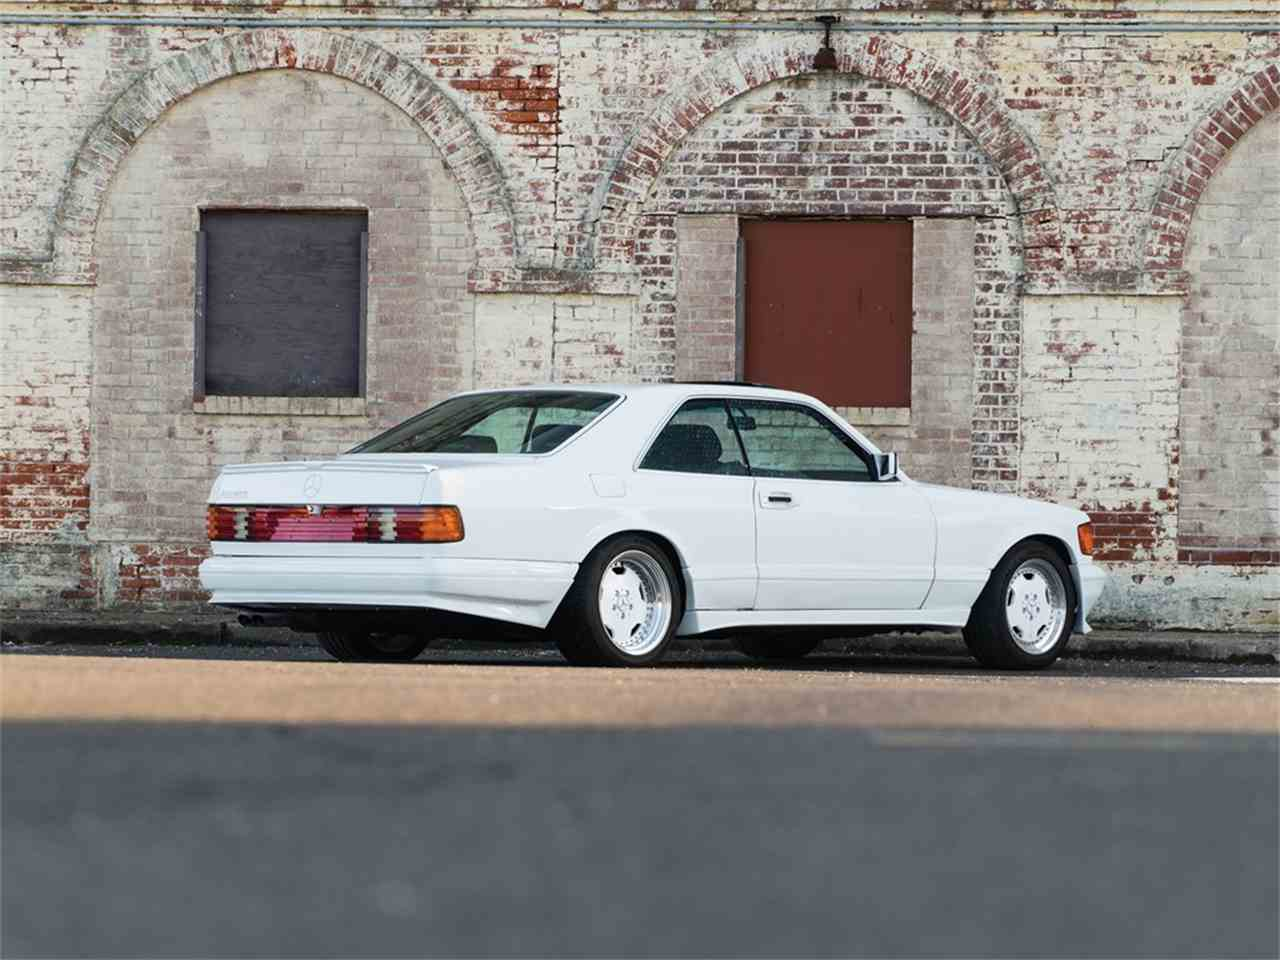 1986 Mercedes-Benz 560 SEC 6.0 AMG \'Wide-Body\' for Sale ...